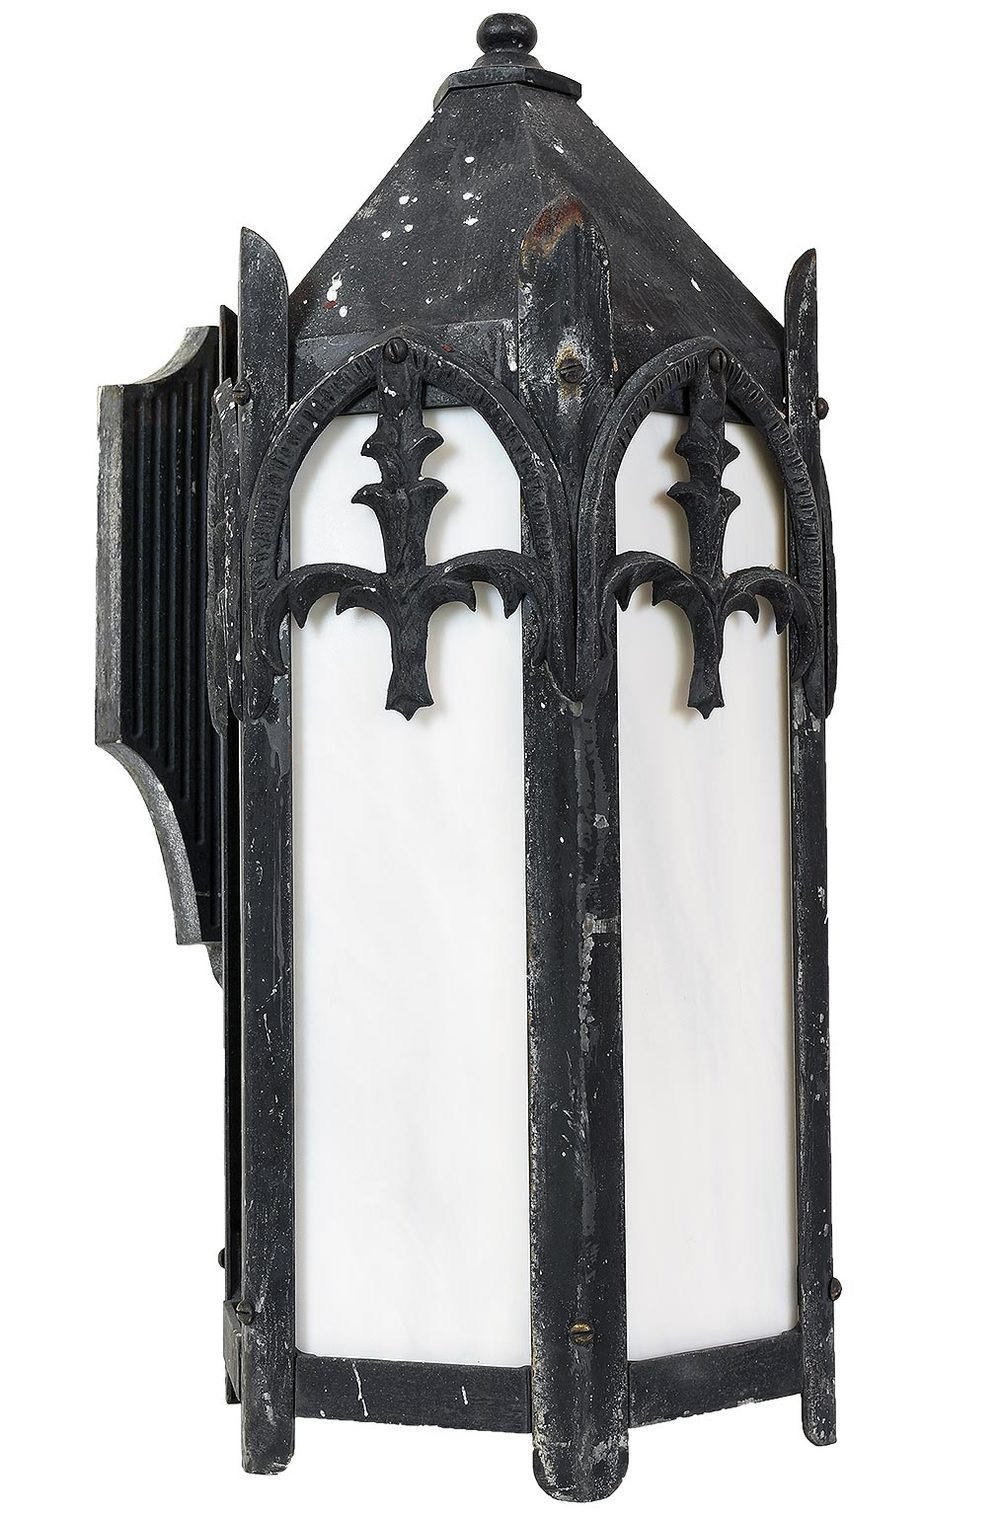 45952-gothic-exterior-sconce.jpg